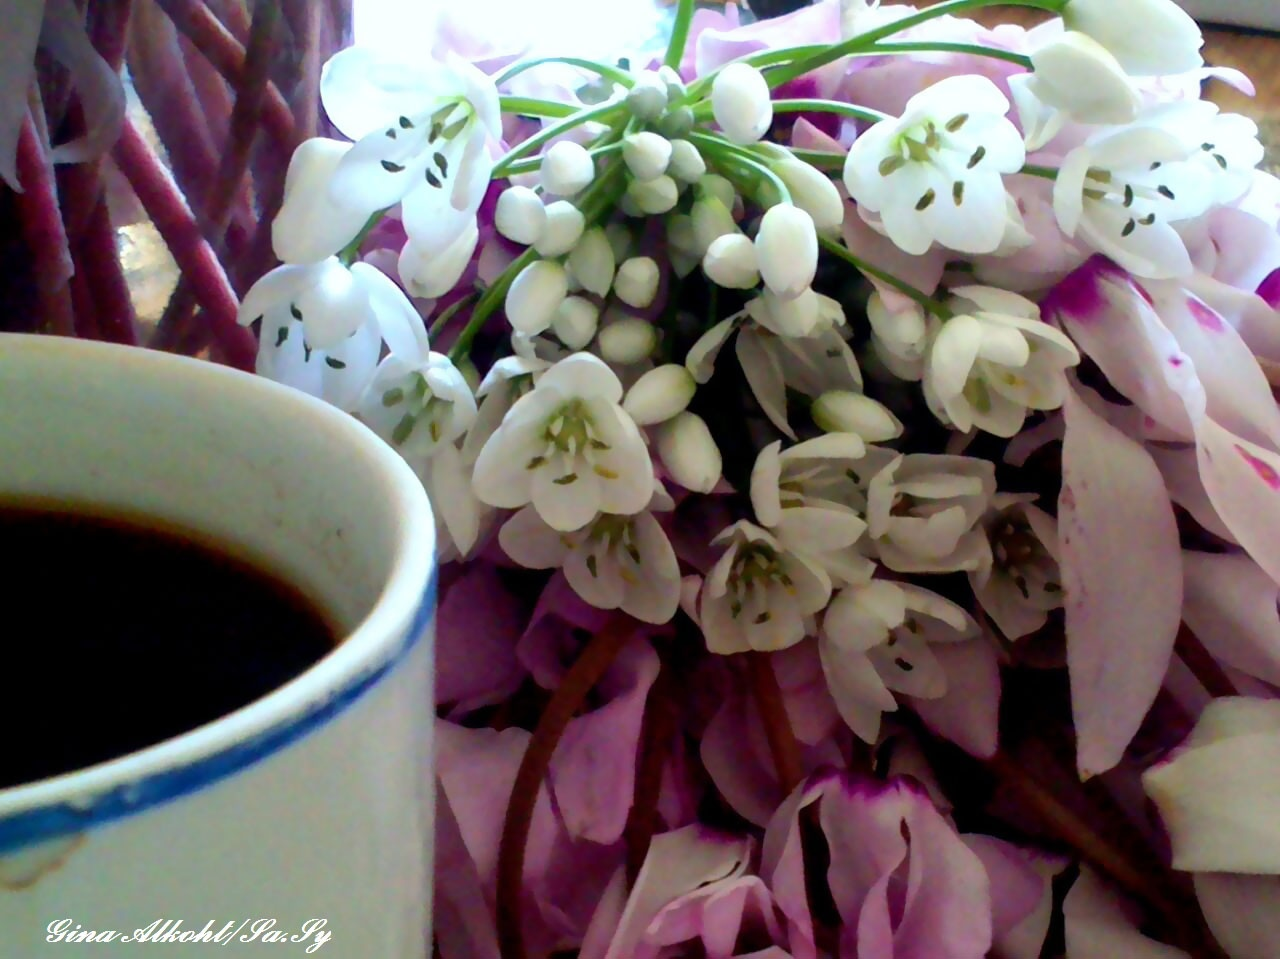 the morning coffee - goodmorning by Gina Alkoht